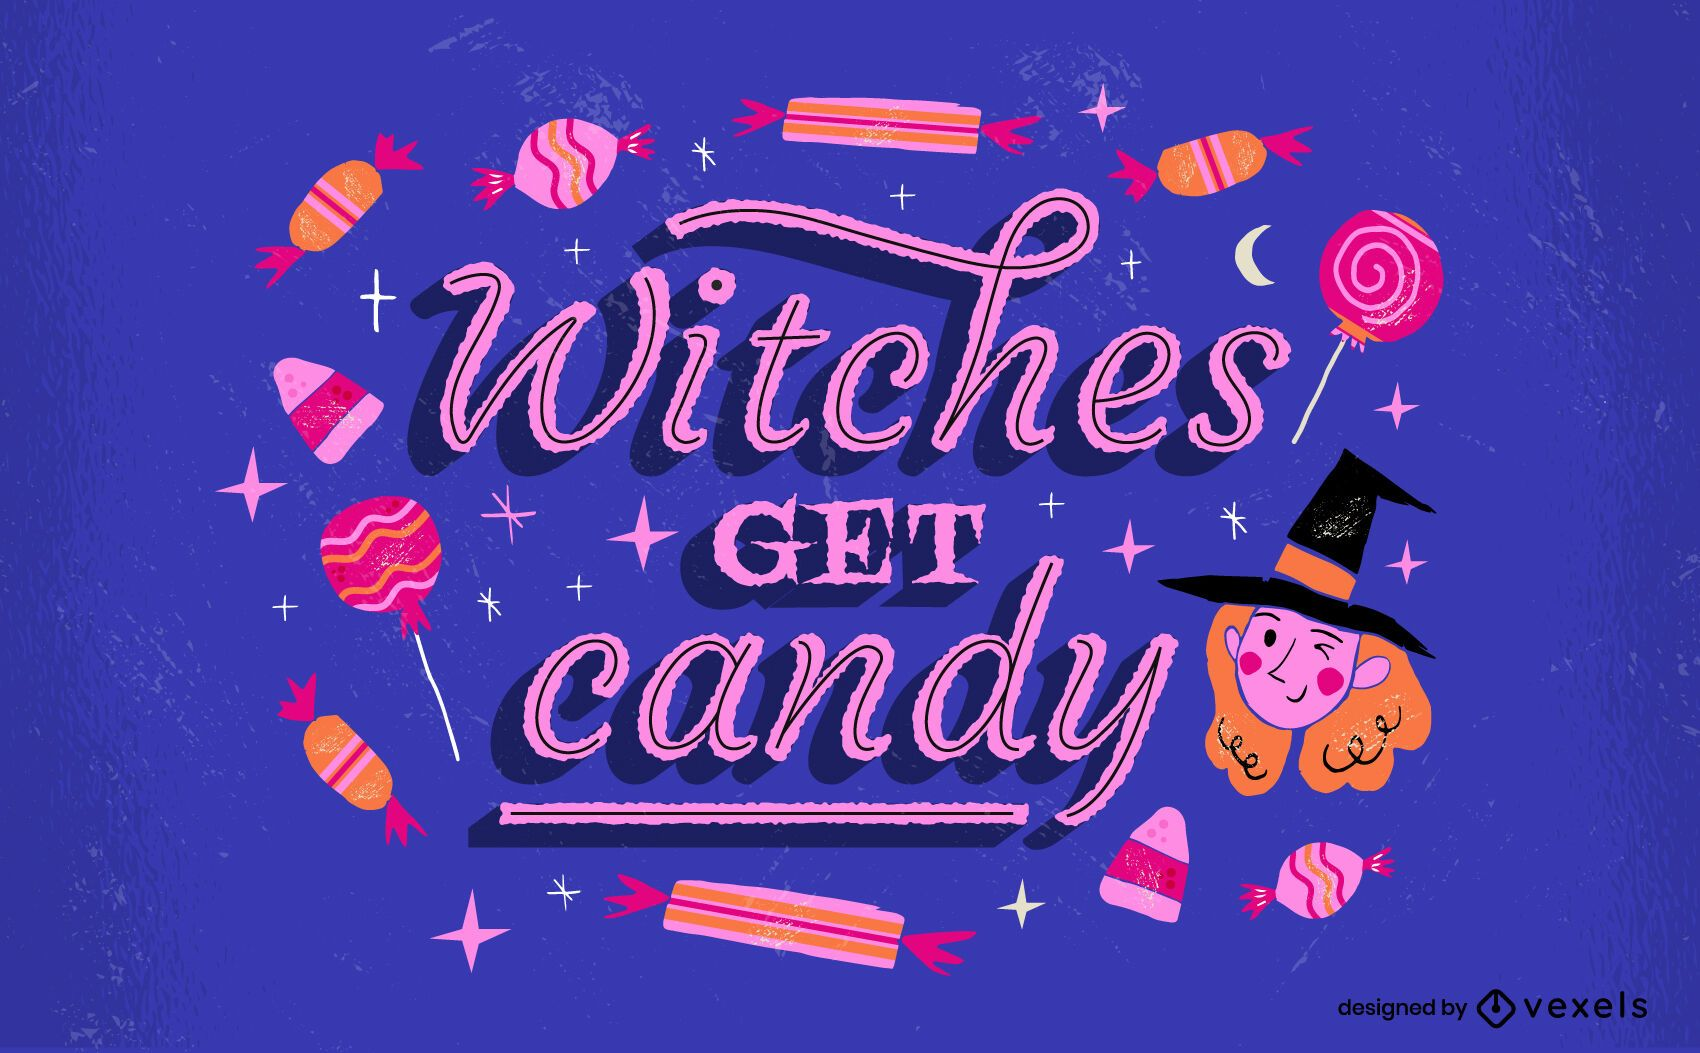 Witches get candy halloween lettering